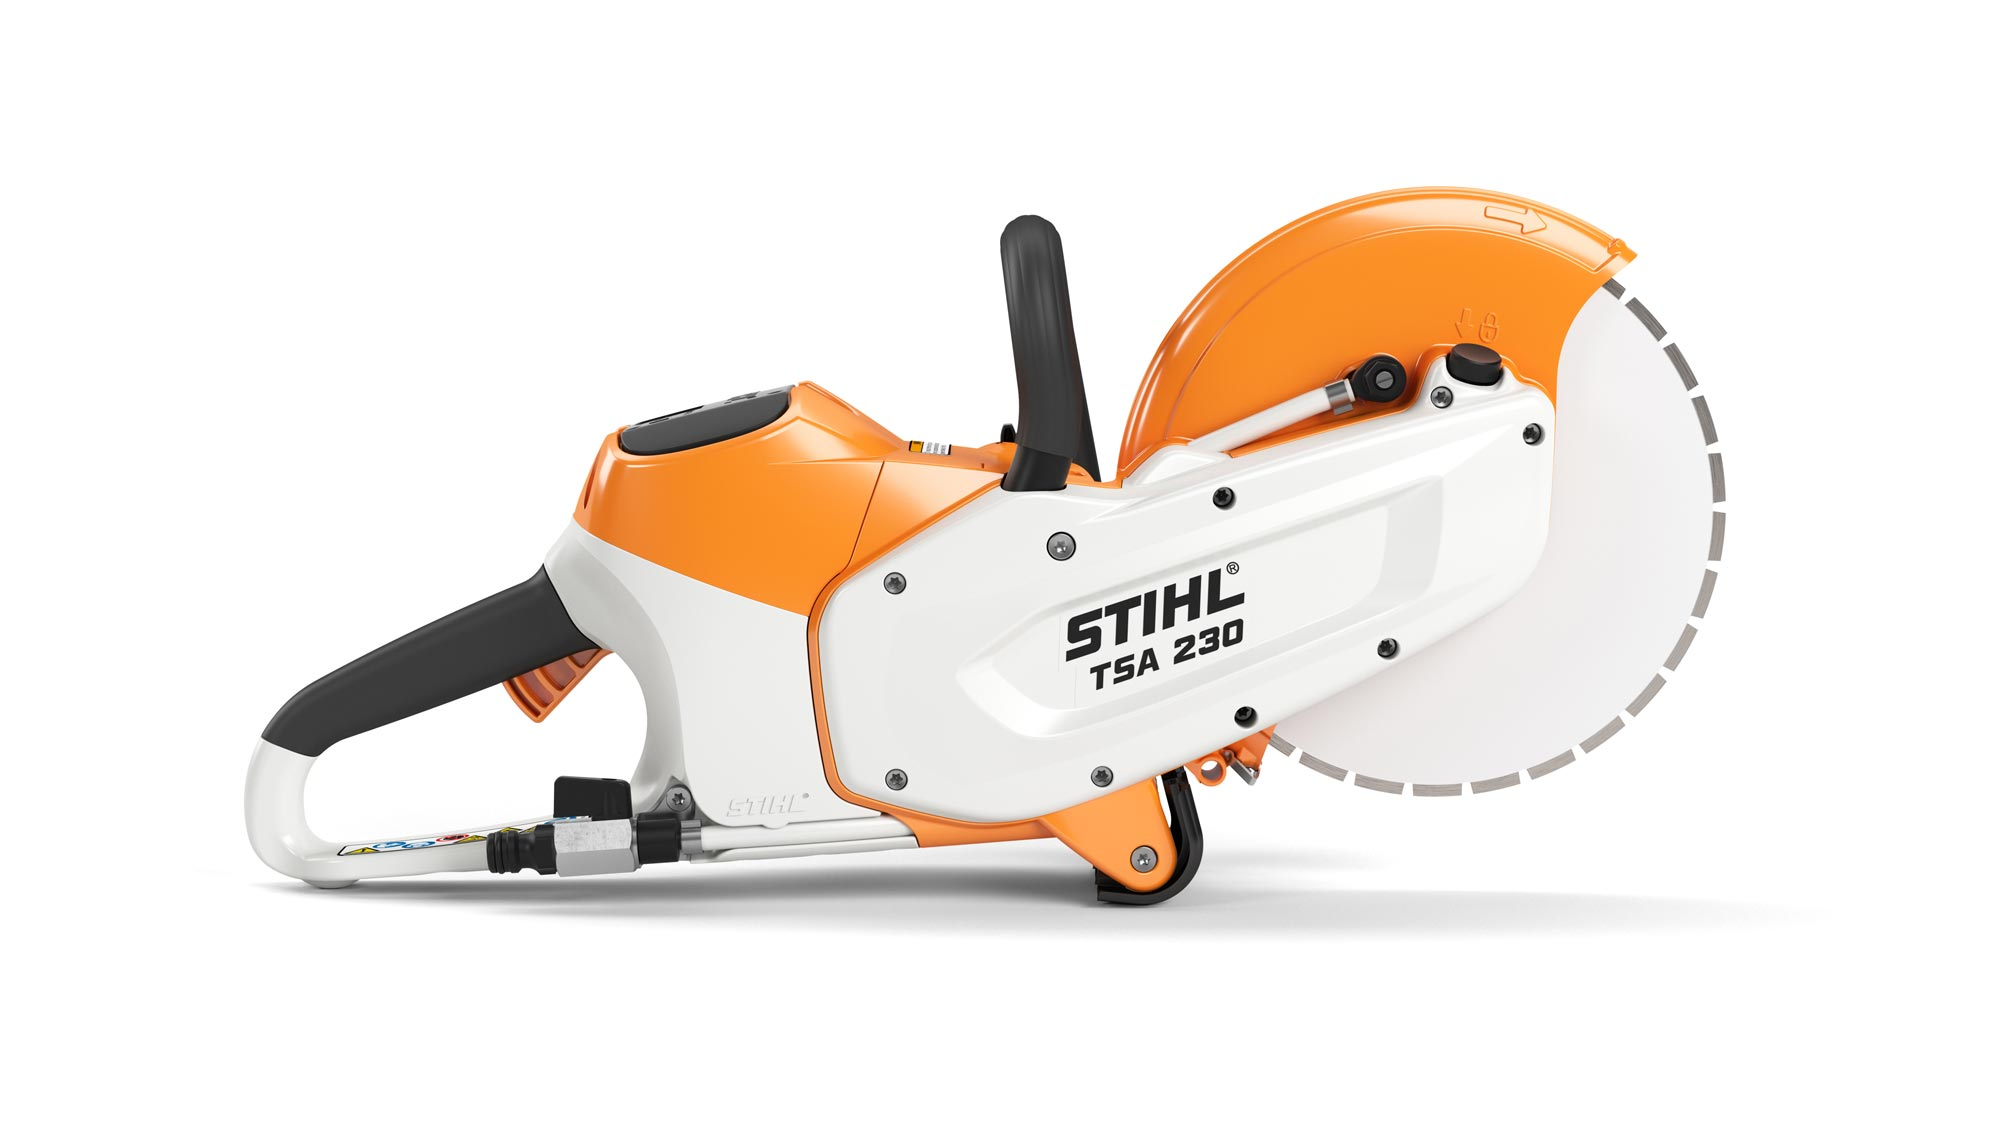 3D product image of orange and white STIHL chainsaw